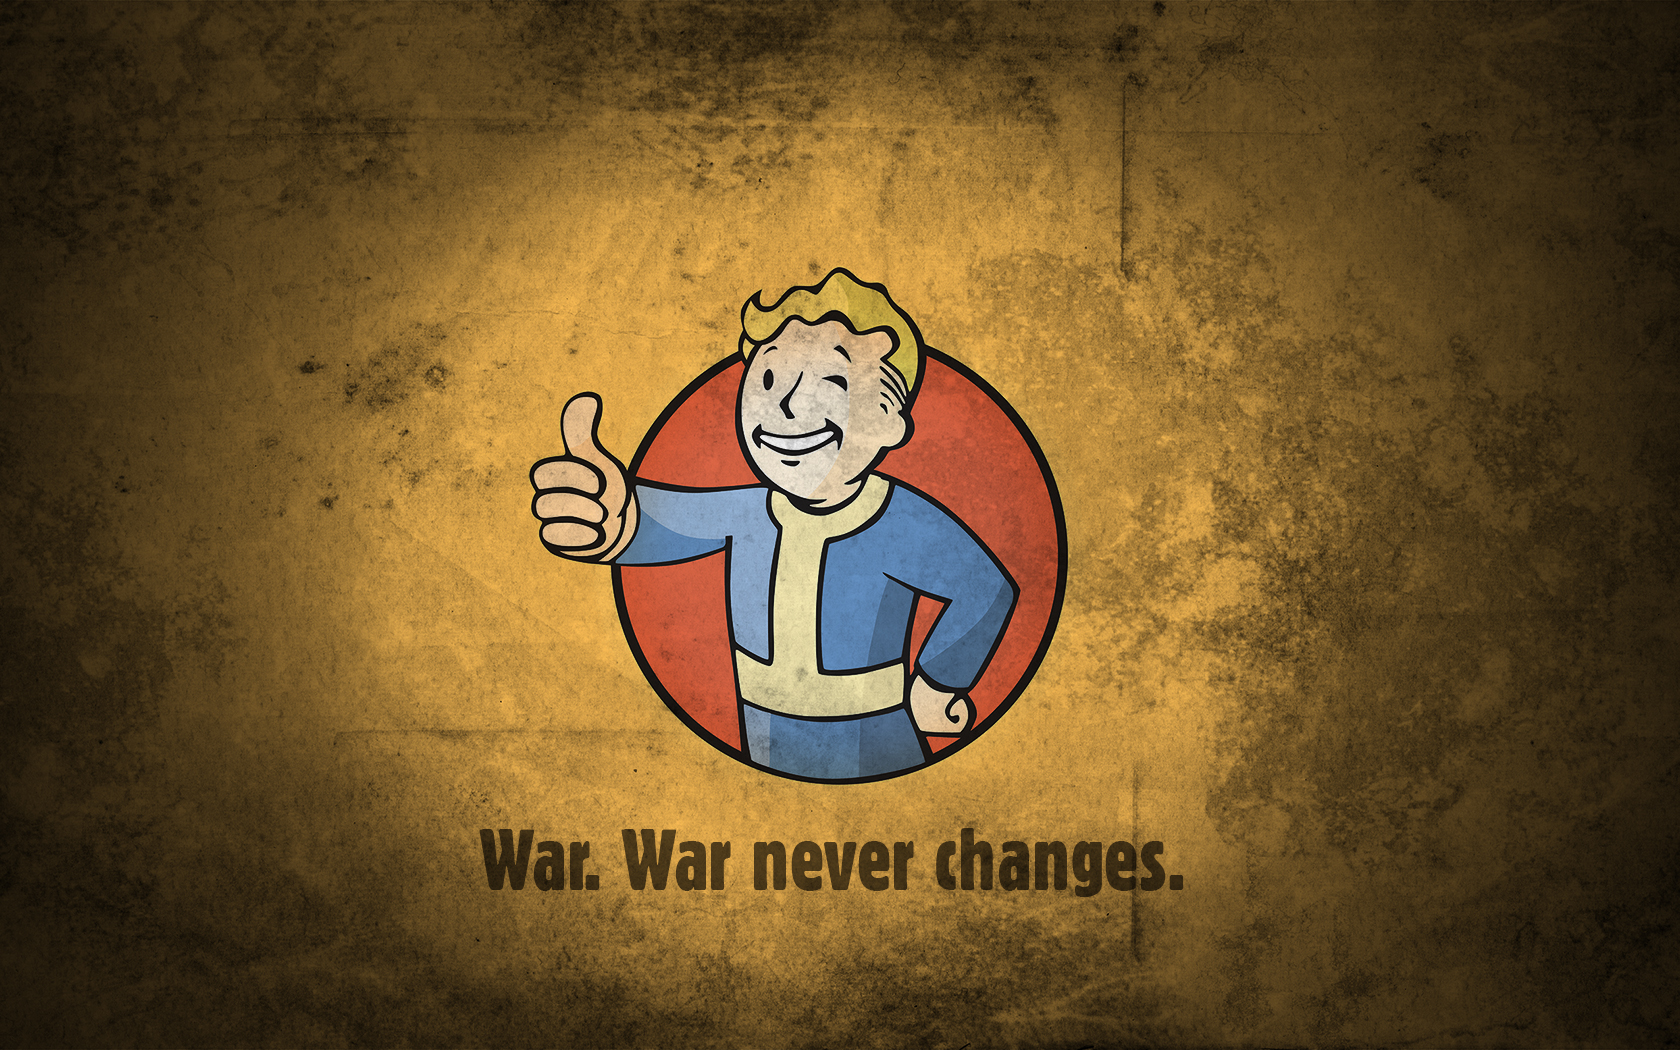 fallout vault boy war never changes wallpaper and